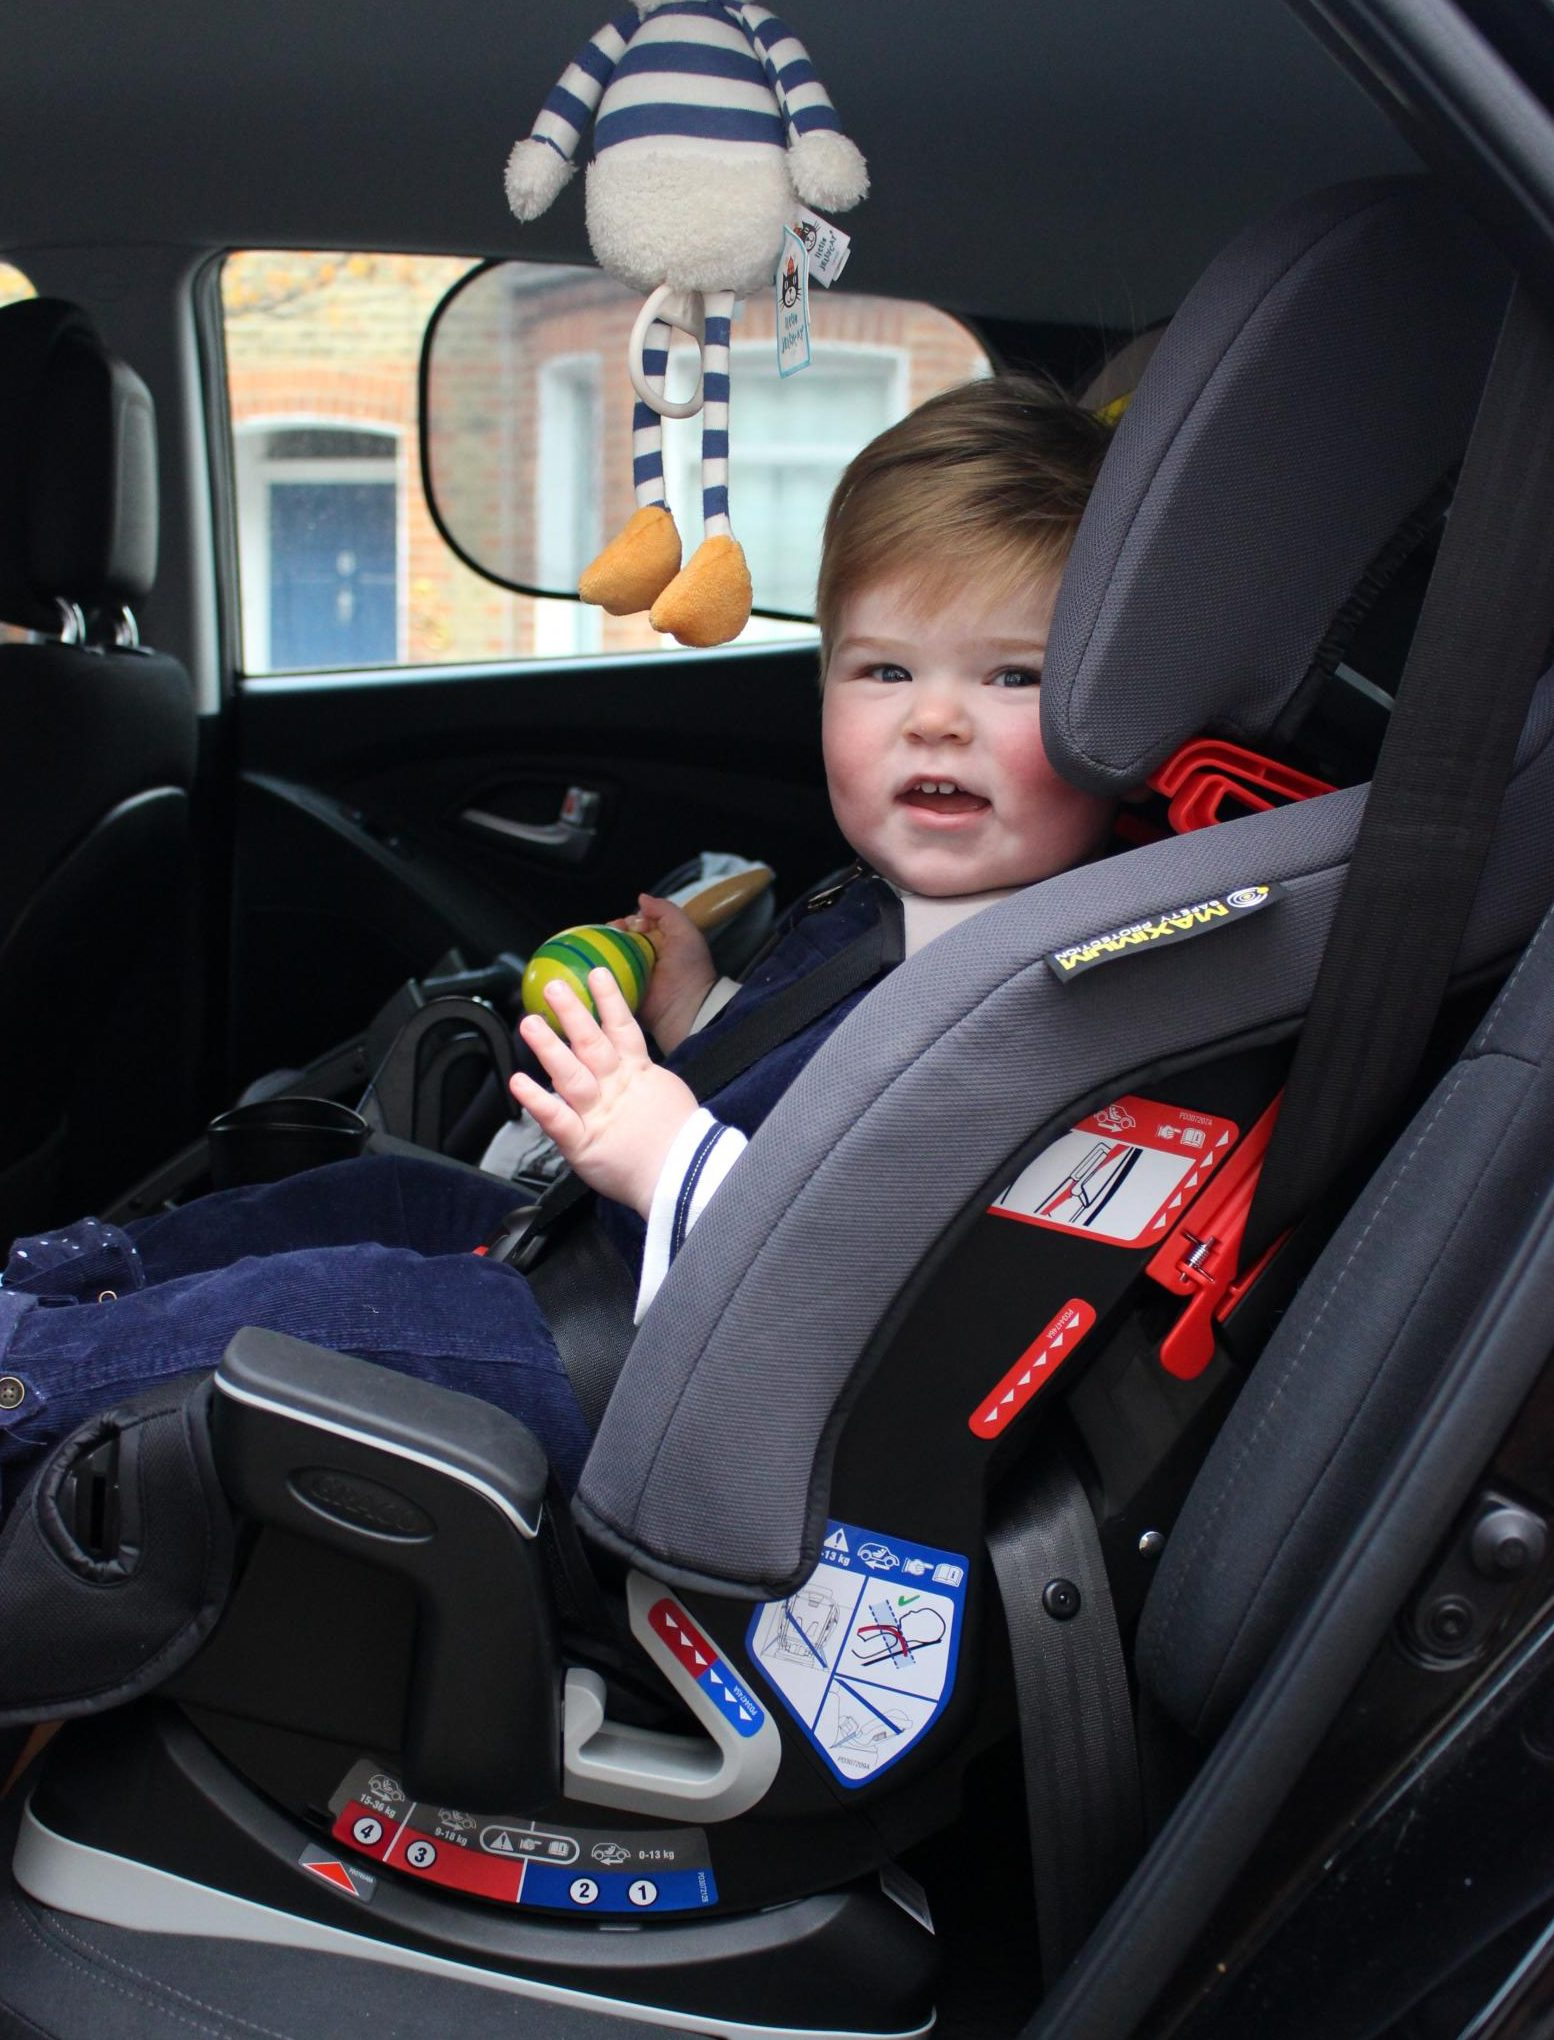 Milestone All-in-one car seat - ready for the sixth trimester